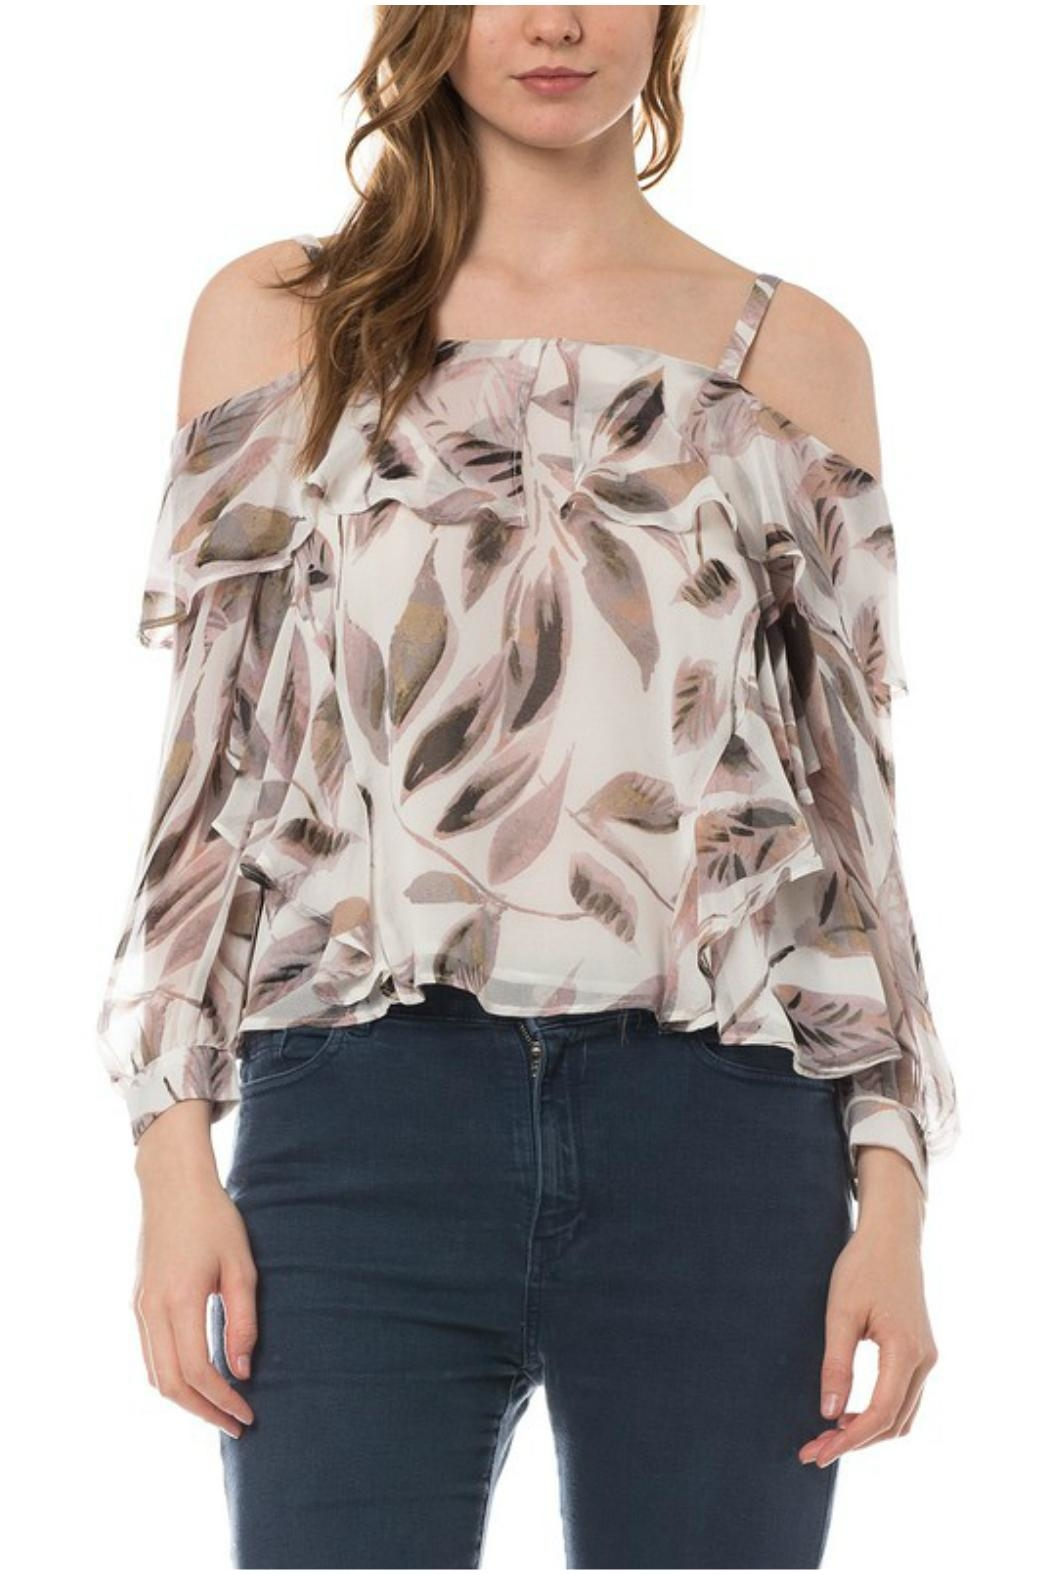 Towne Feather Print Top - Main Image